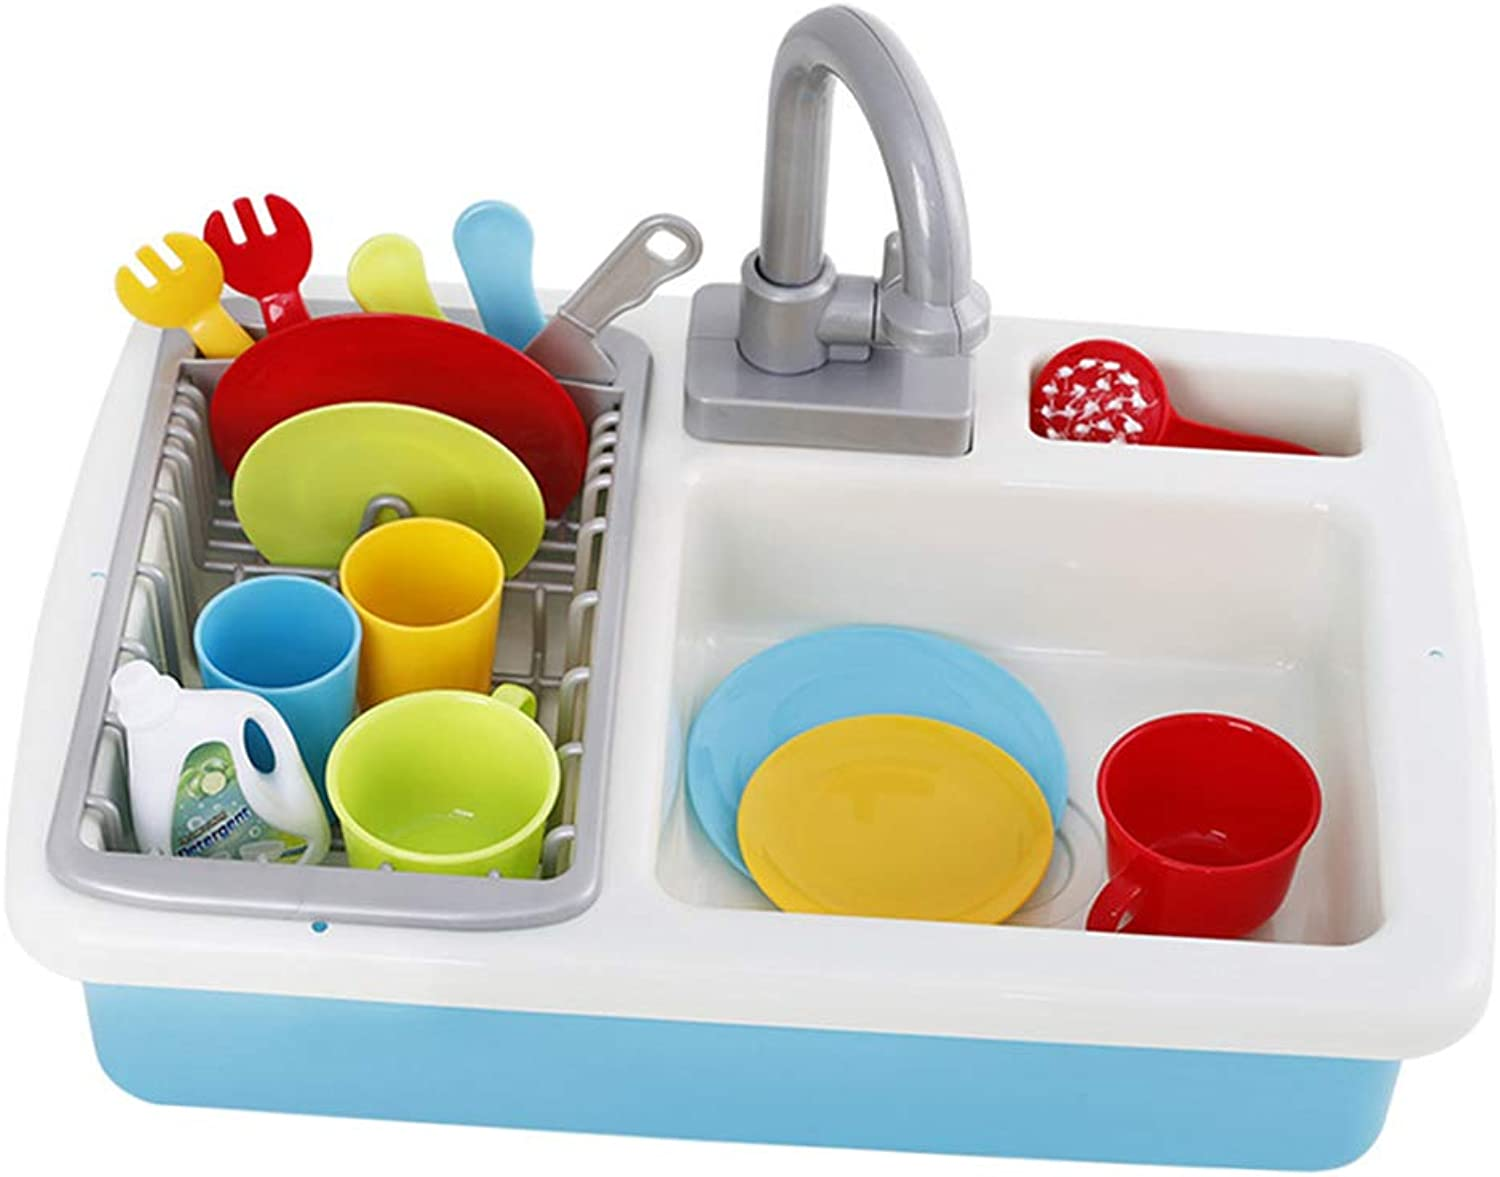 Baoblaze Simulation Kitchen Sink Play Set (Real Working Faucet & Drain) Preschool Pretend Play Toys for Boys Girls